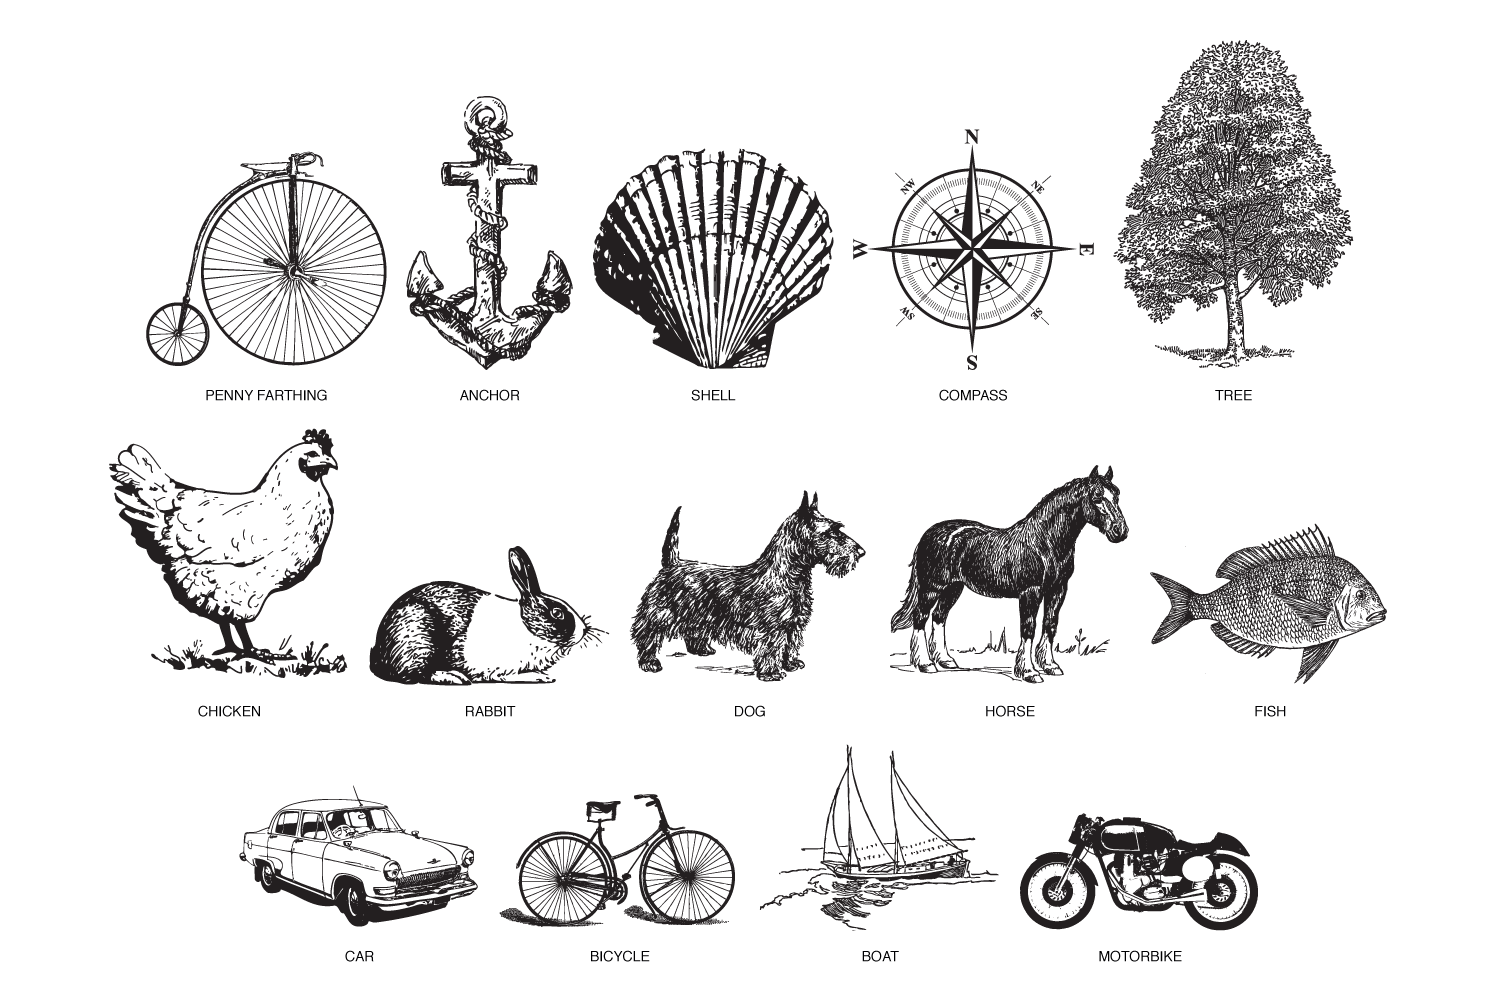 Luxury leather phone cases cover illustrations, penny farthing, anchor, shell, compass, tree, chicken, rabbit, dog, horse, fish, car, bicycle, boat, motorbike